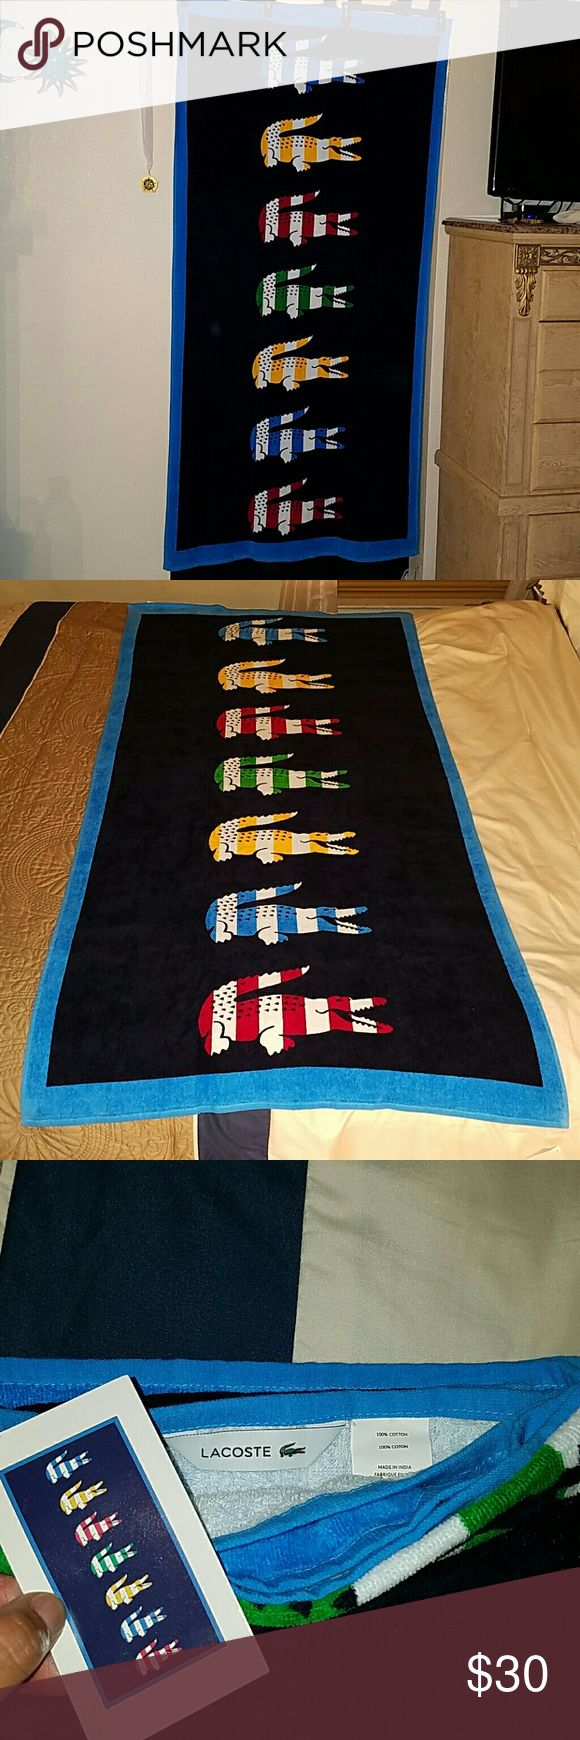 Lacoste large beach towel Oversized beach towel with striped crocodiles across. Great for beach or just shower....brand new. Lacoste Accessories